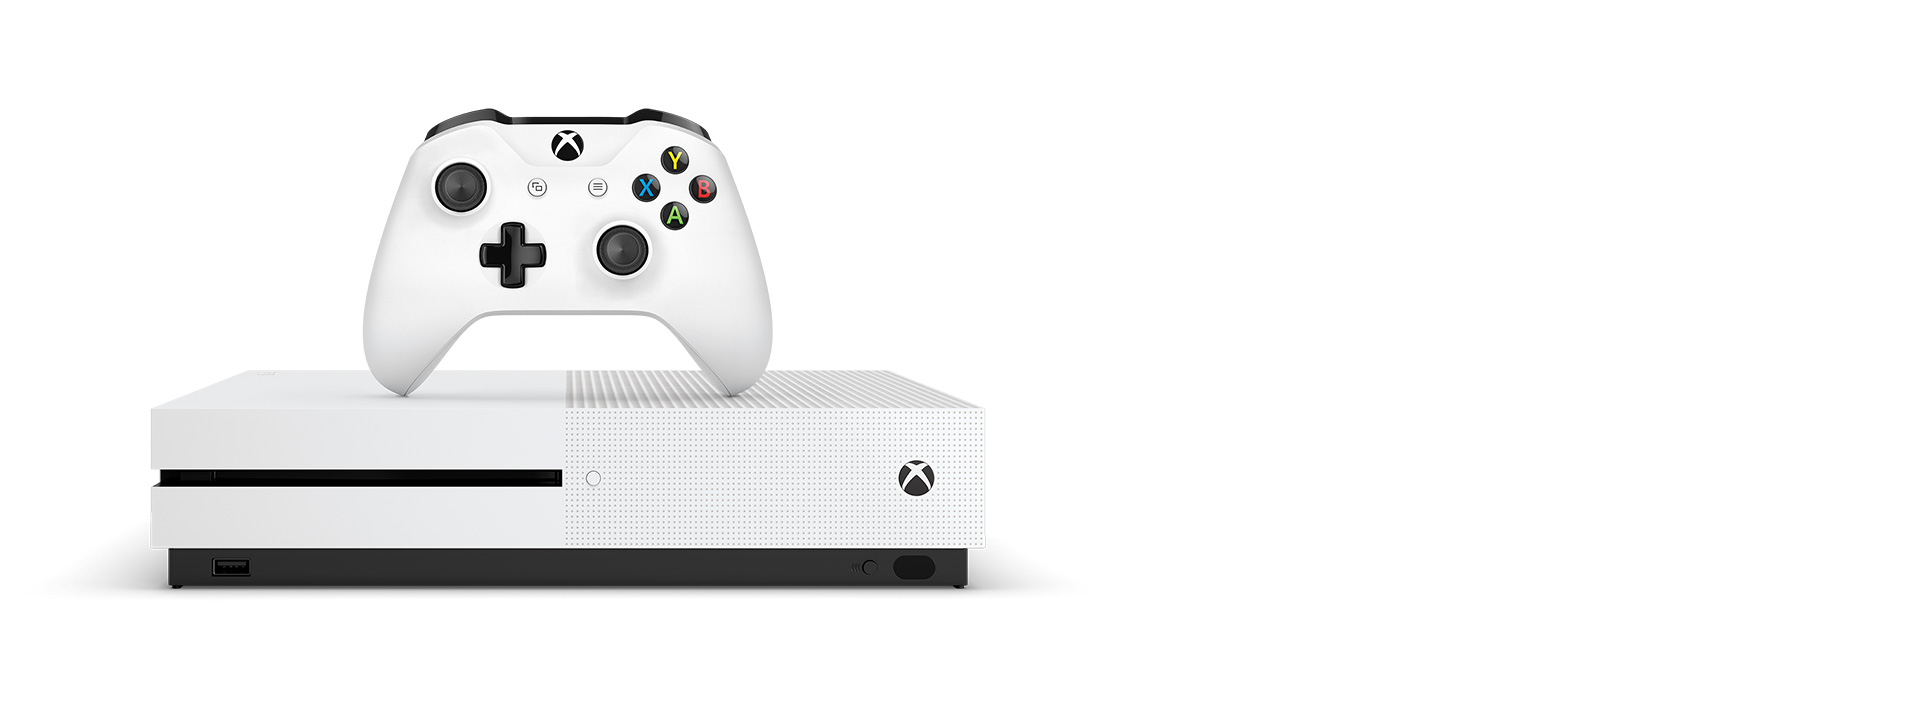 Buy an Xbox One S